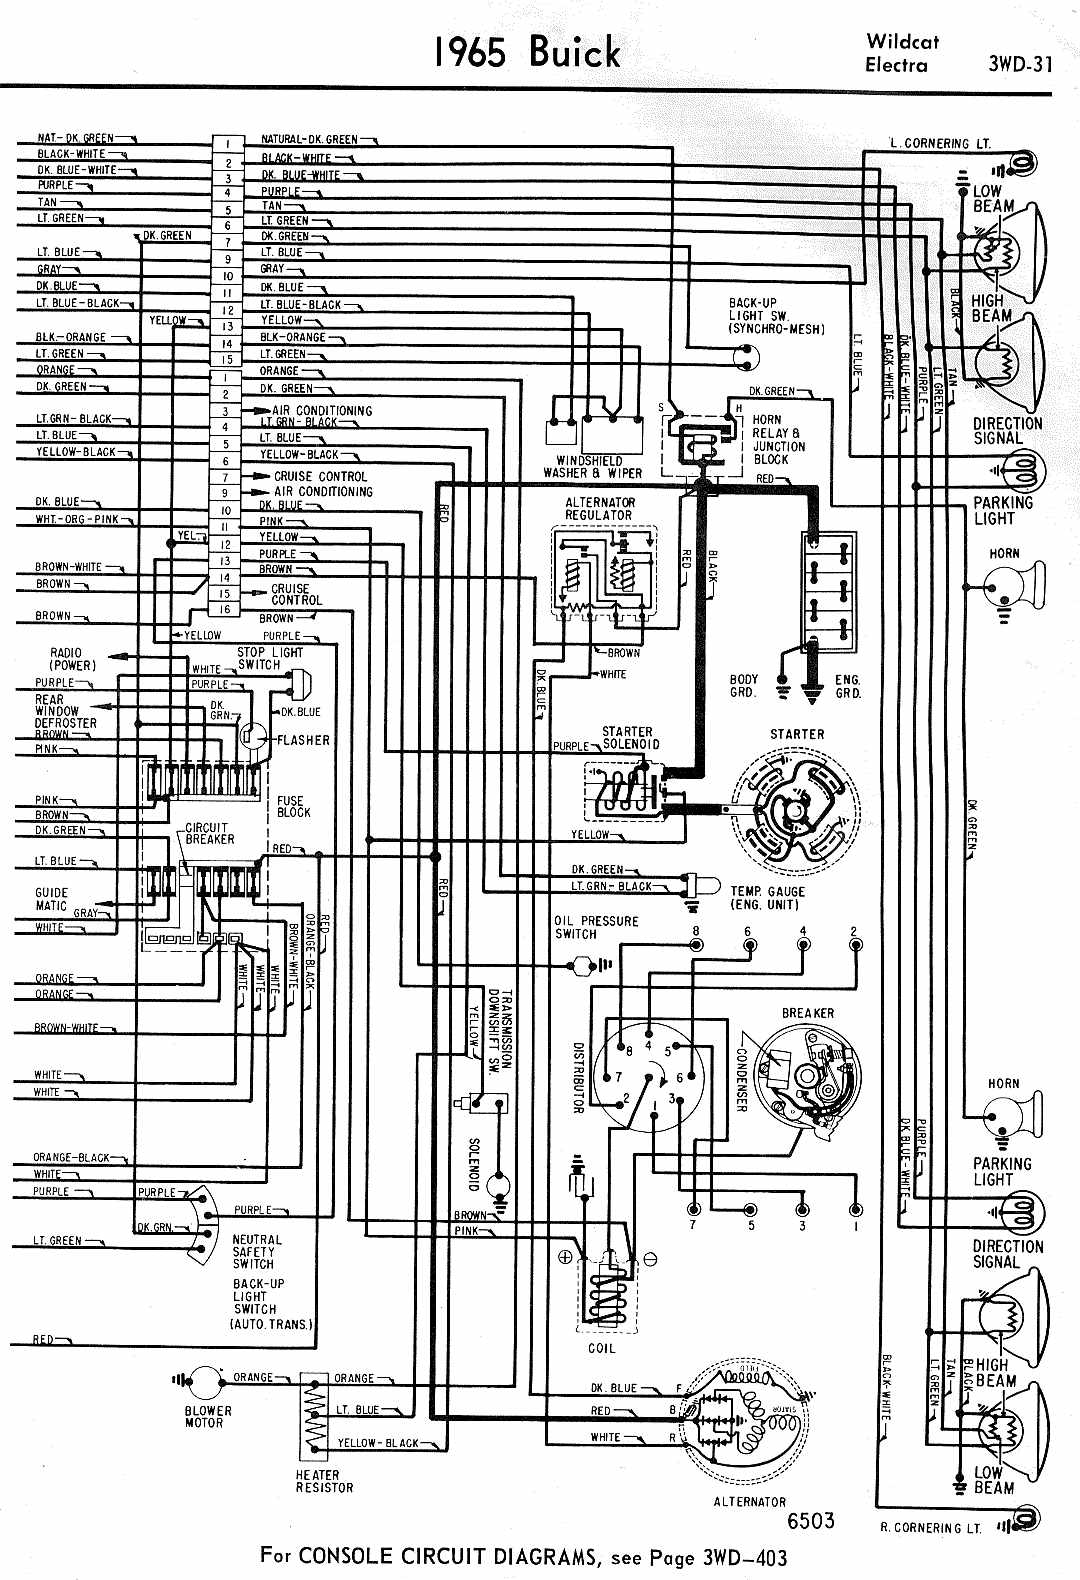 1939 Buick Wiring Diagram Schematic Libraries Basic Ignition 1200 Cc Harley 1940 Simple Schema1940 Database Library 1953 Engine